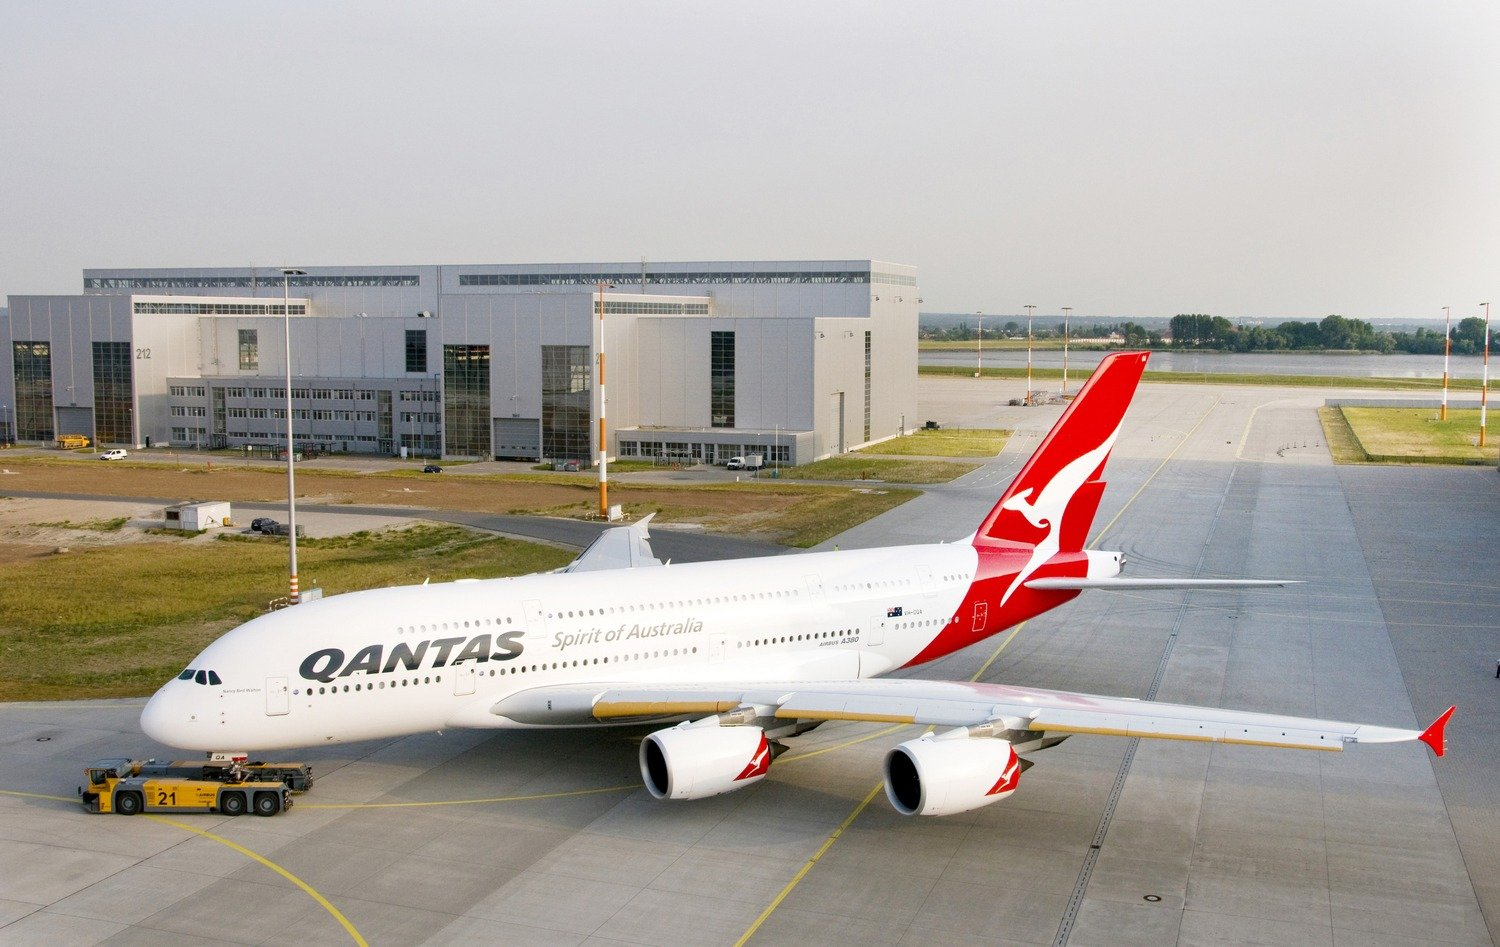 qantas airline analysis Qantas ffp qantas airways 94 multiplus tam 116 air china air china 199 companies' reports, ey analysis 4 | frequent flyer program: ready for take-off operational benefits of ffp business airline as its frequent flyer program until 2007 when varig and smiles.